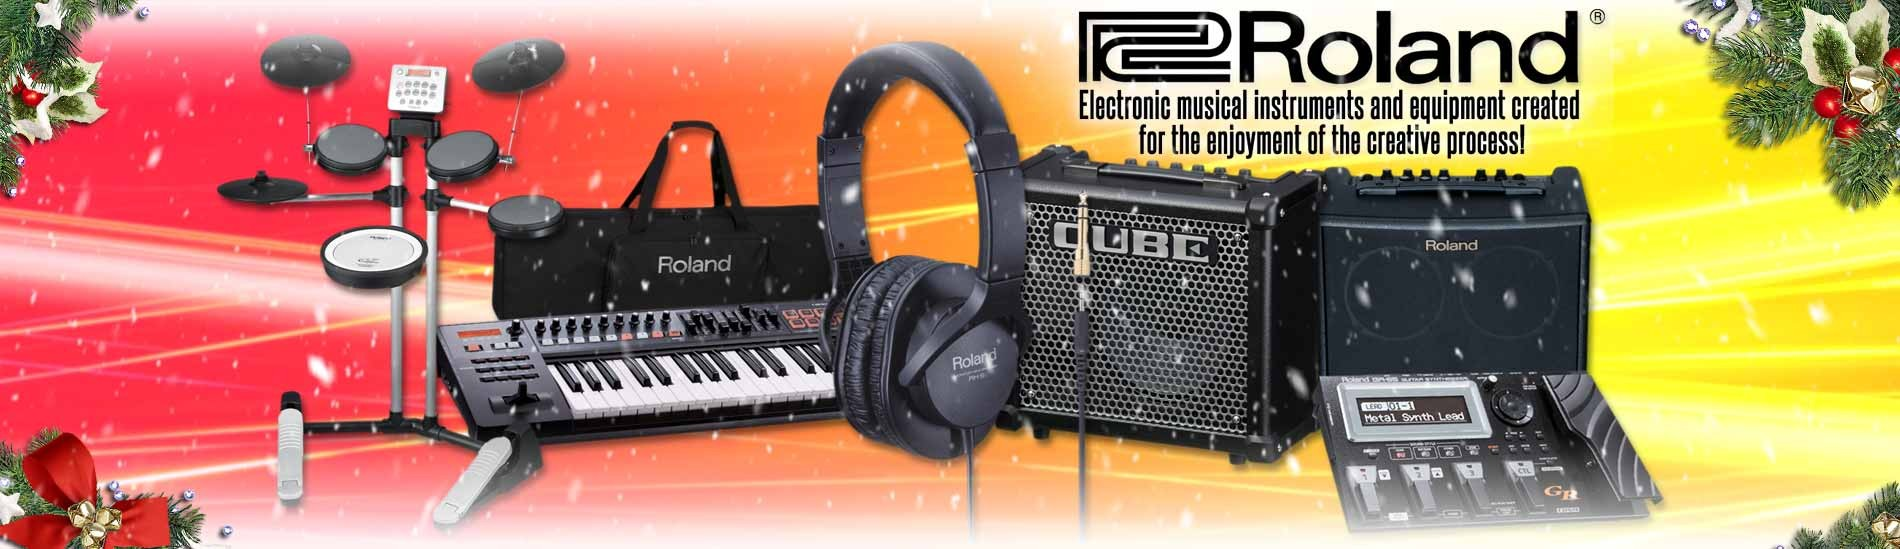 Roland - Electronic Musical Instruments and Equipment Created for Your Enjoyment